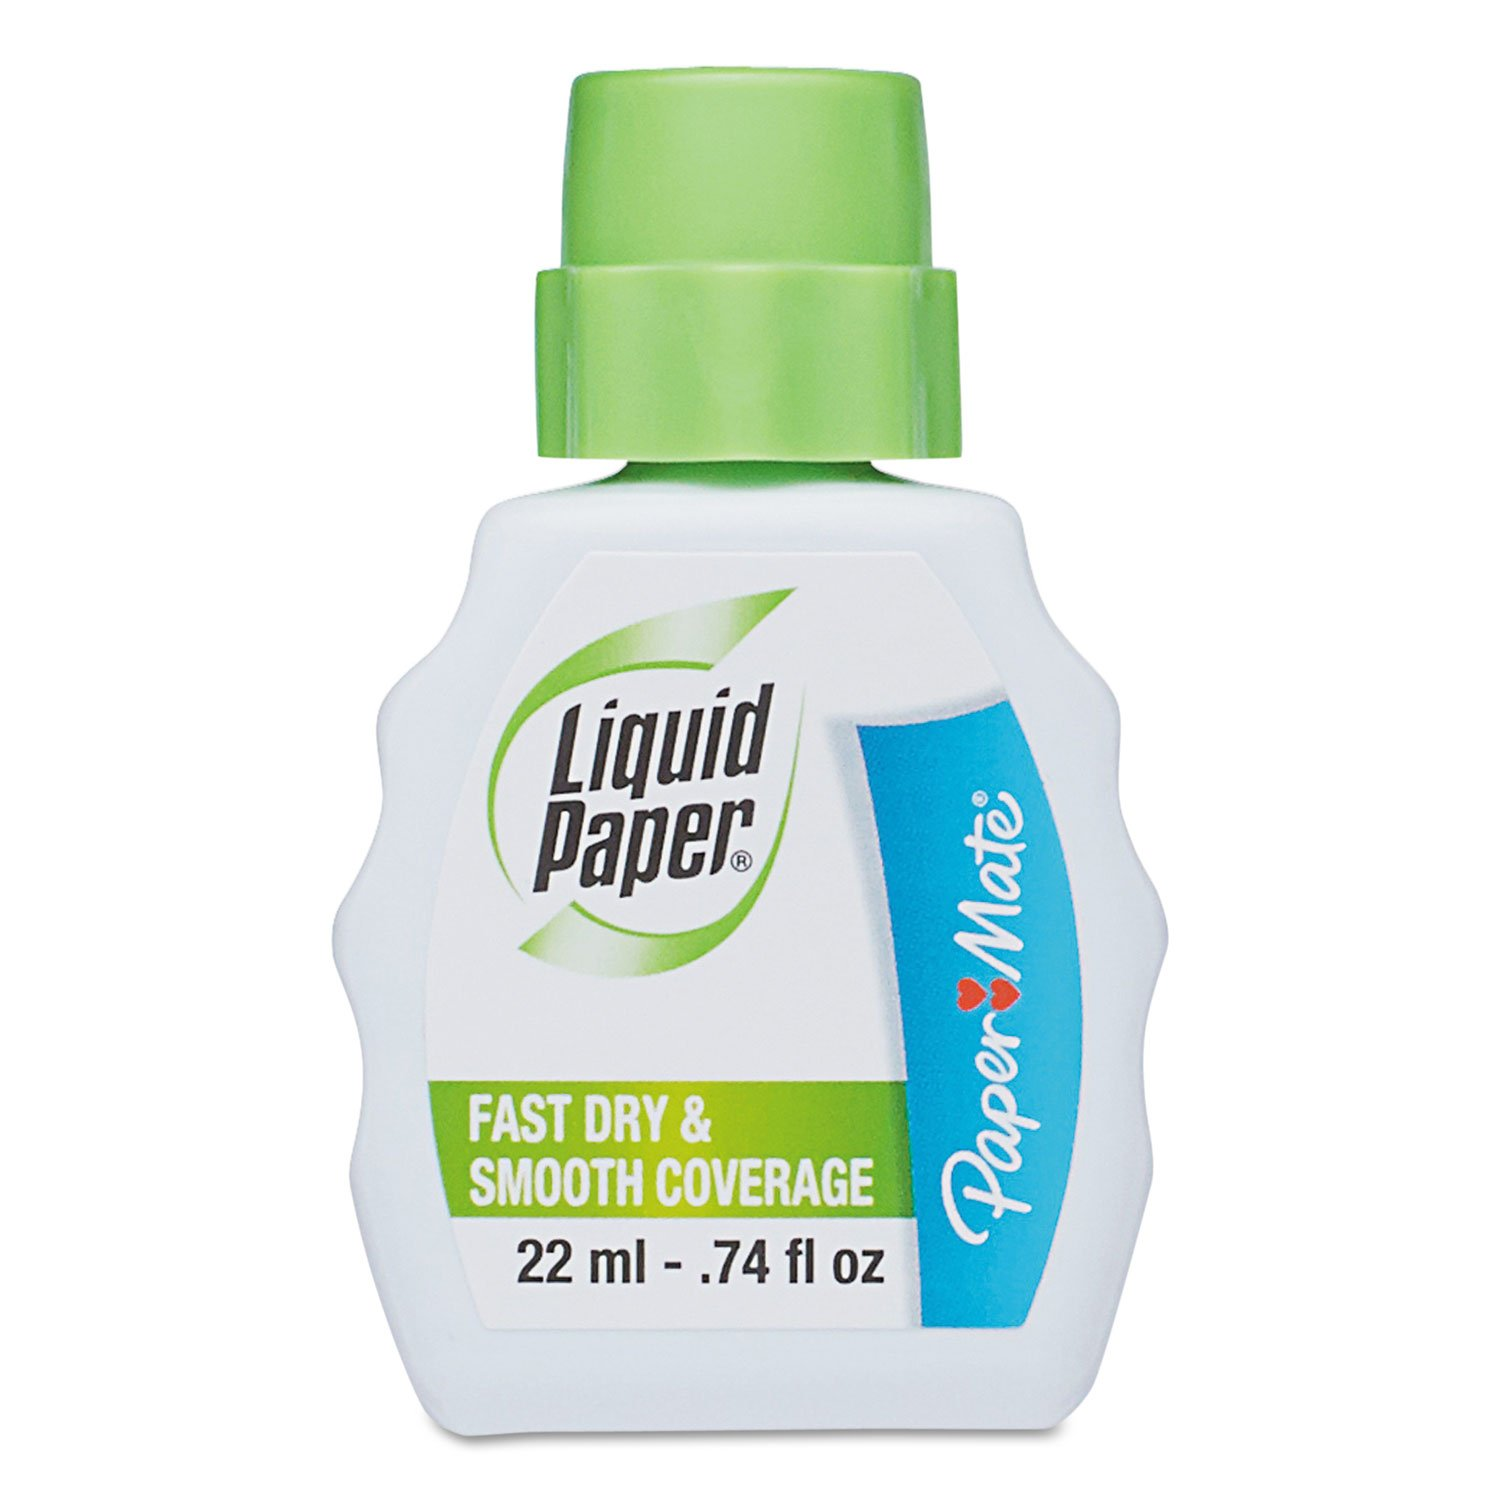 Liquid Paper 5640115 Correction Fluid, Fast Drying, 22ml, Bright White